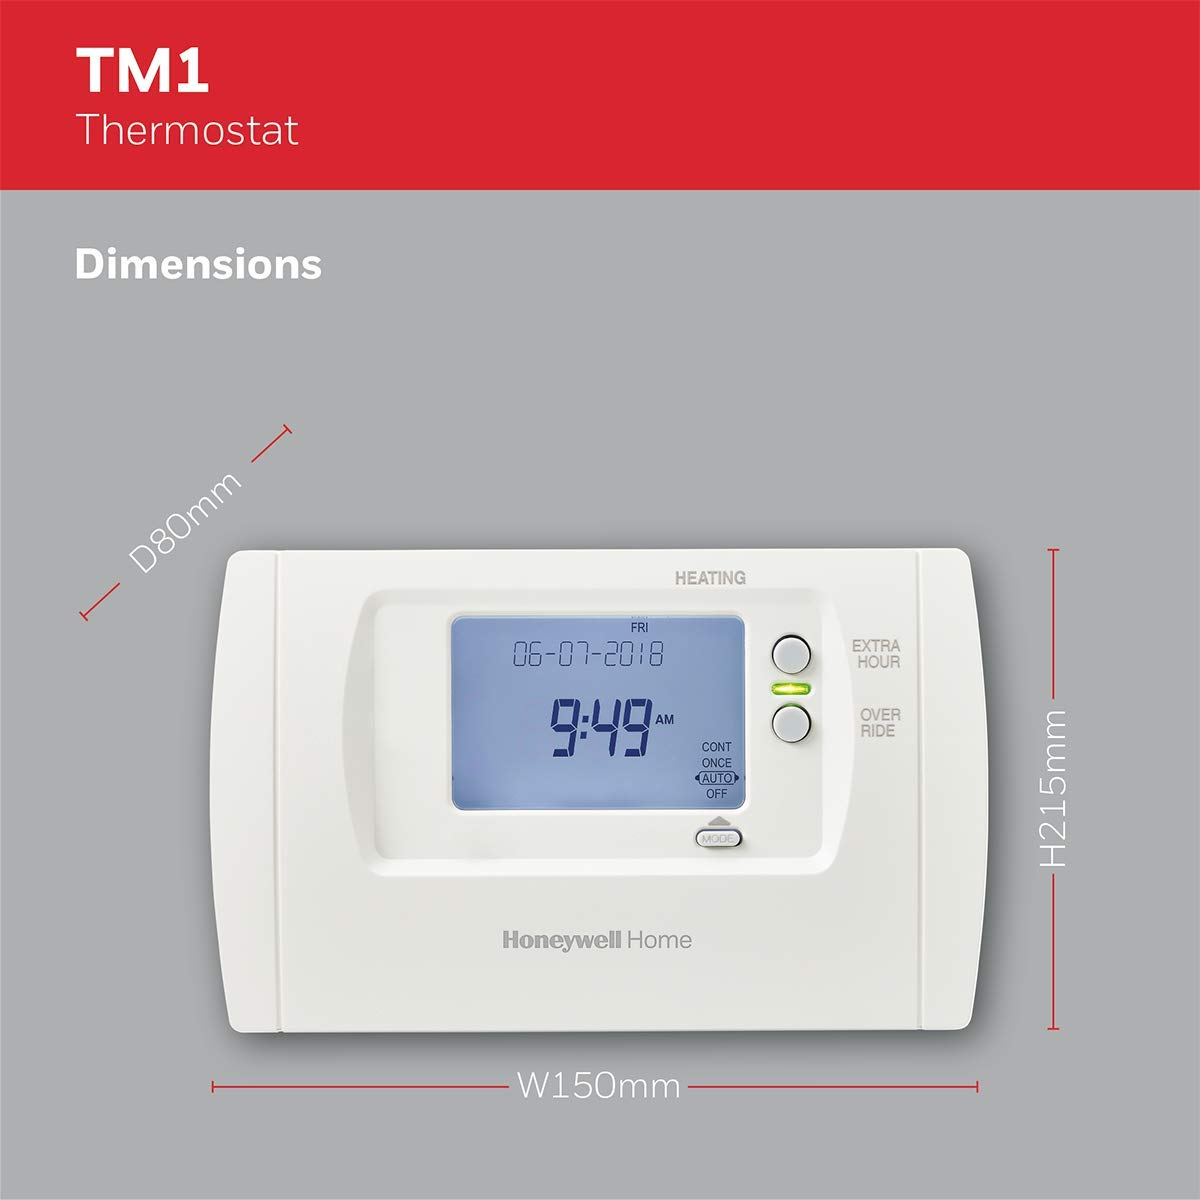 Temporizador digital color blanco Honeywell Home THR850SWE TM1